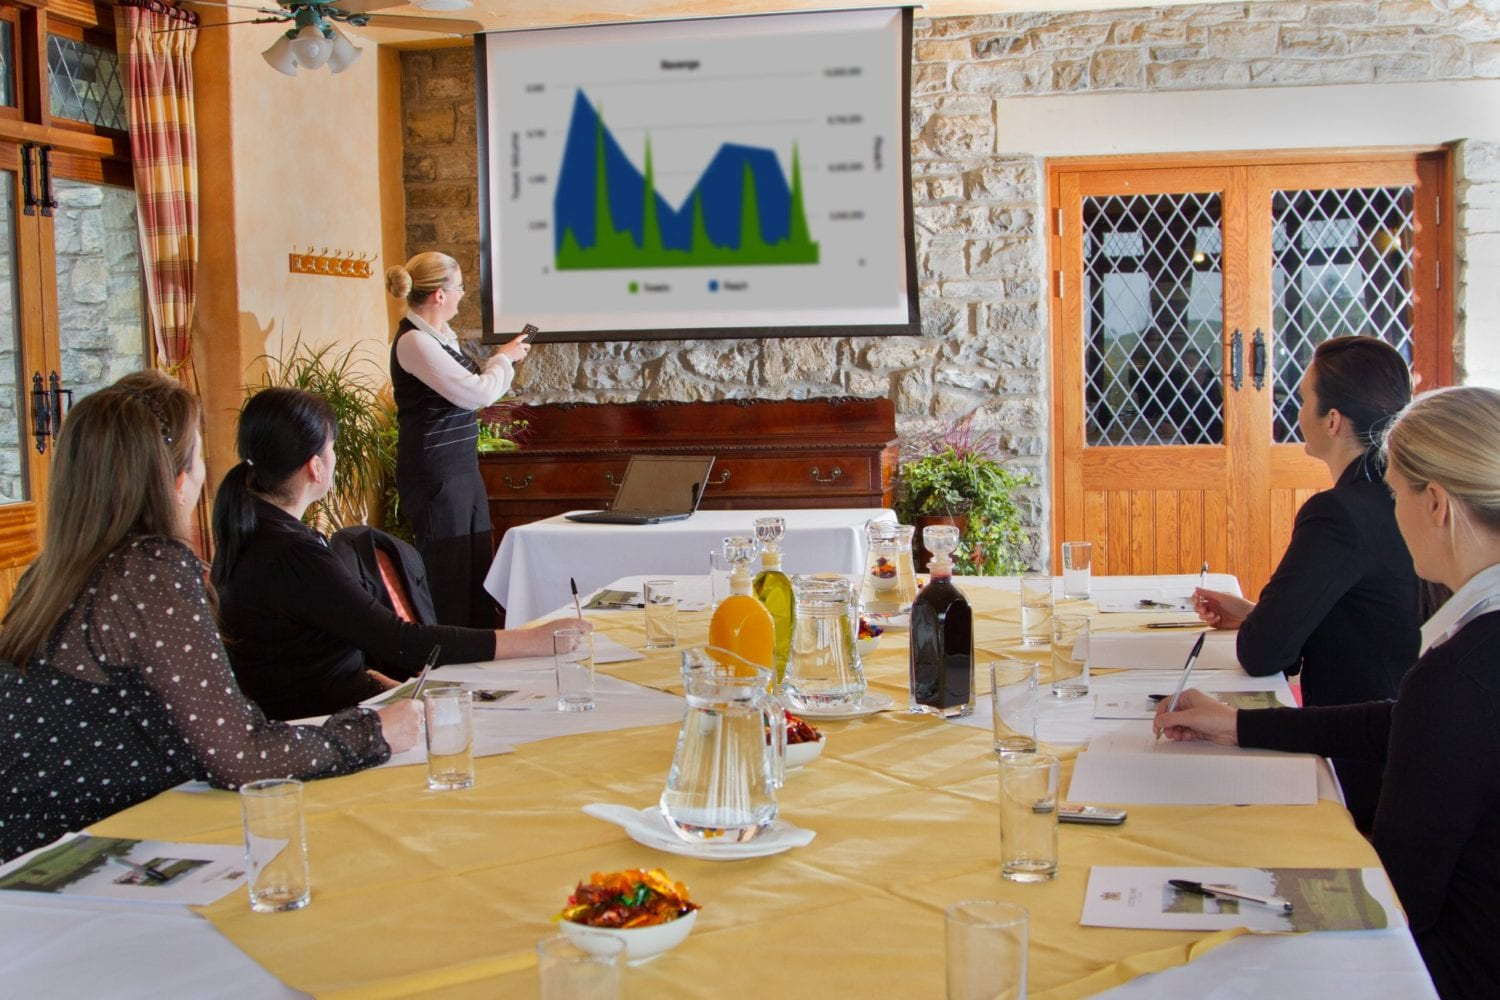 Meeting rooms to hire, South Wales - Group of business people watching a presentation in a cottage stylised conference space